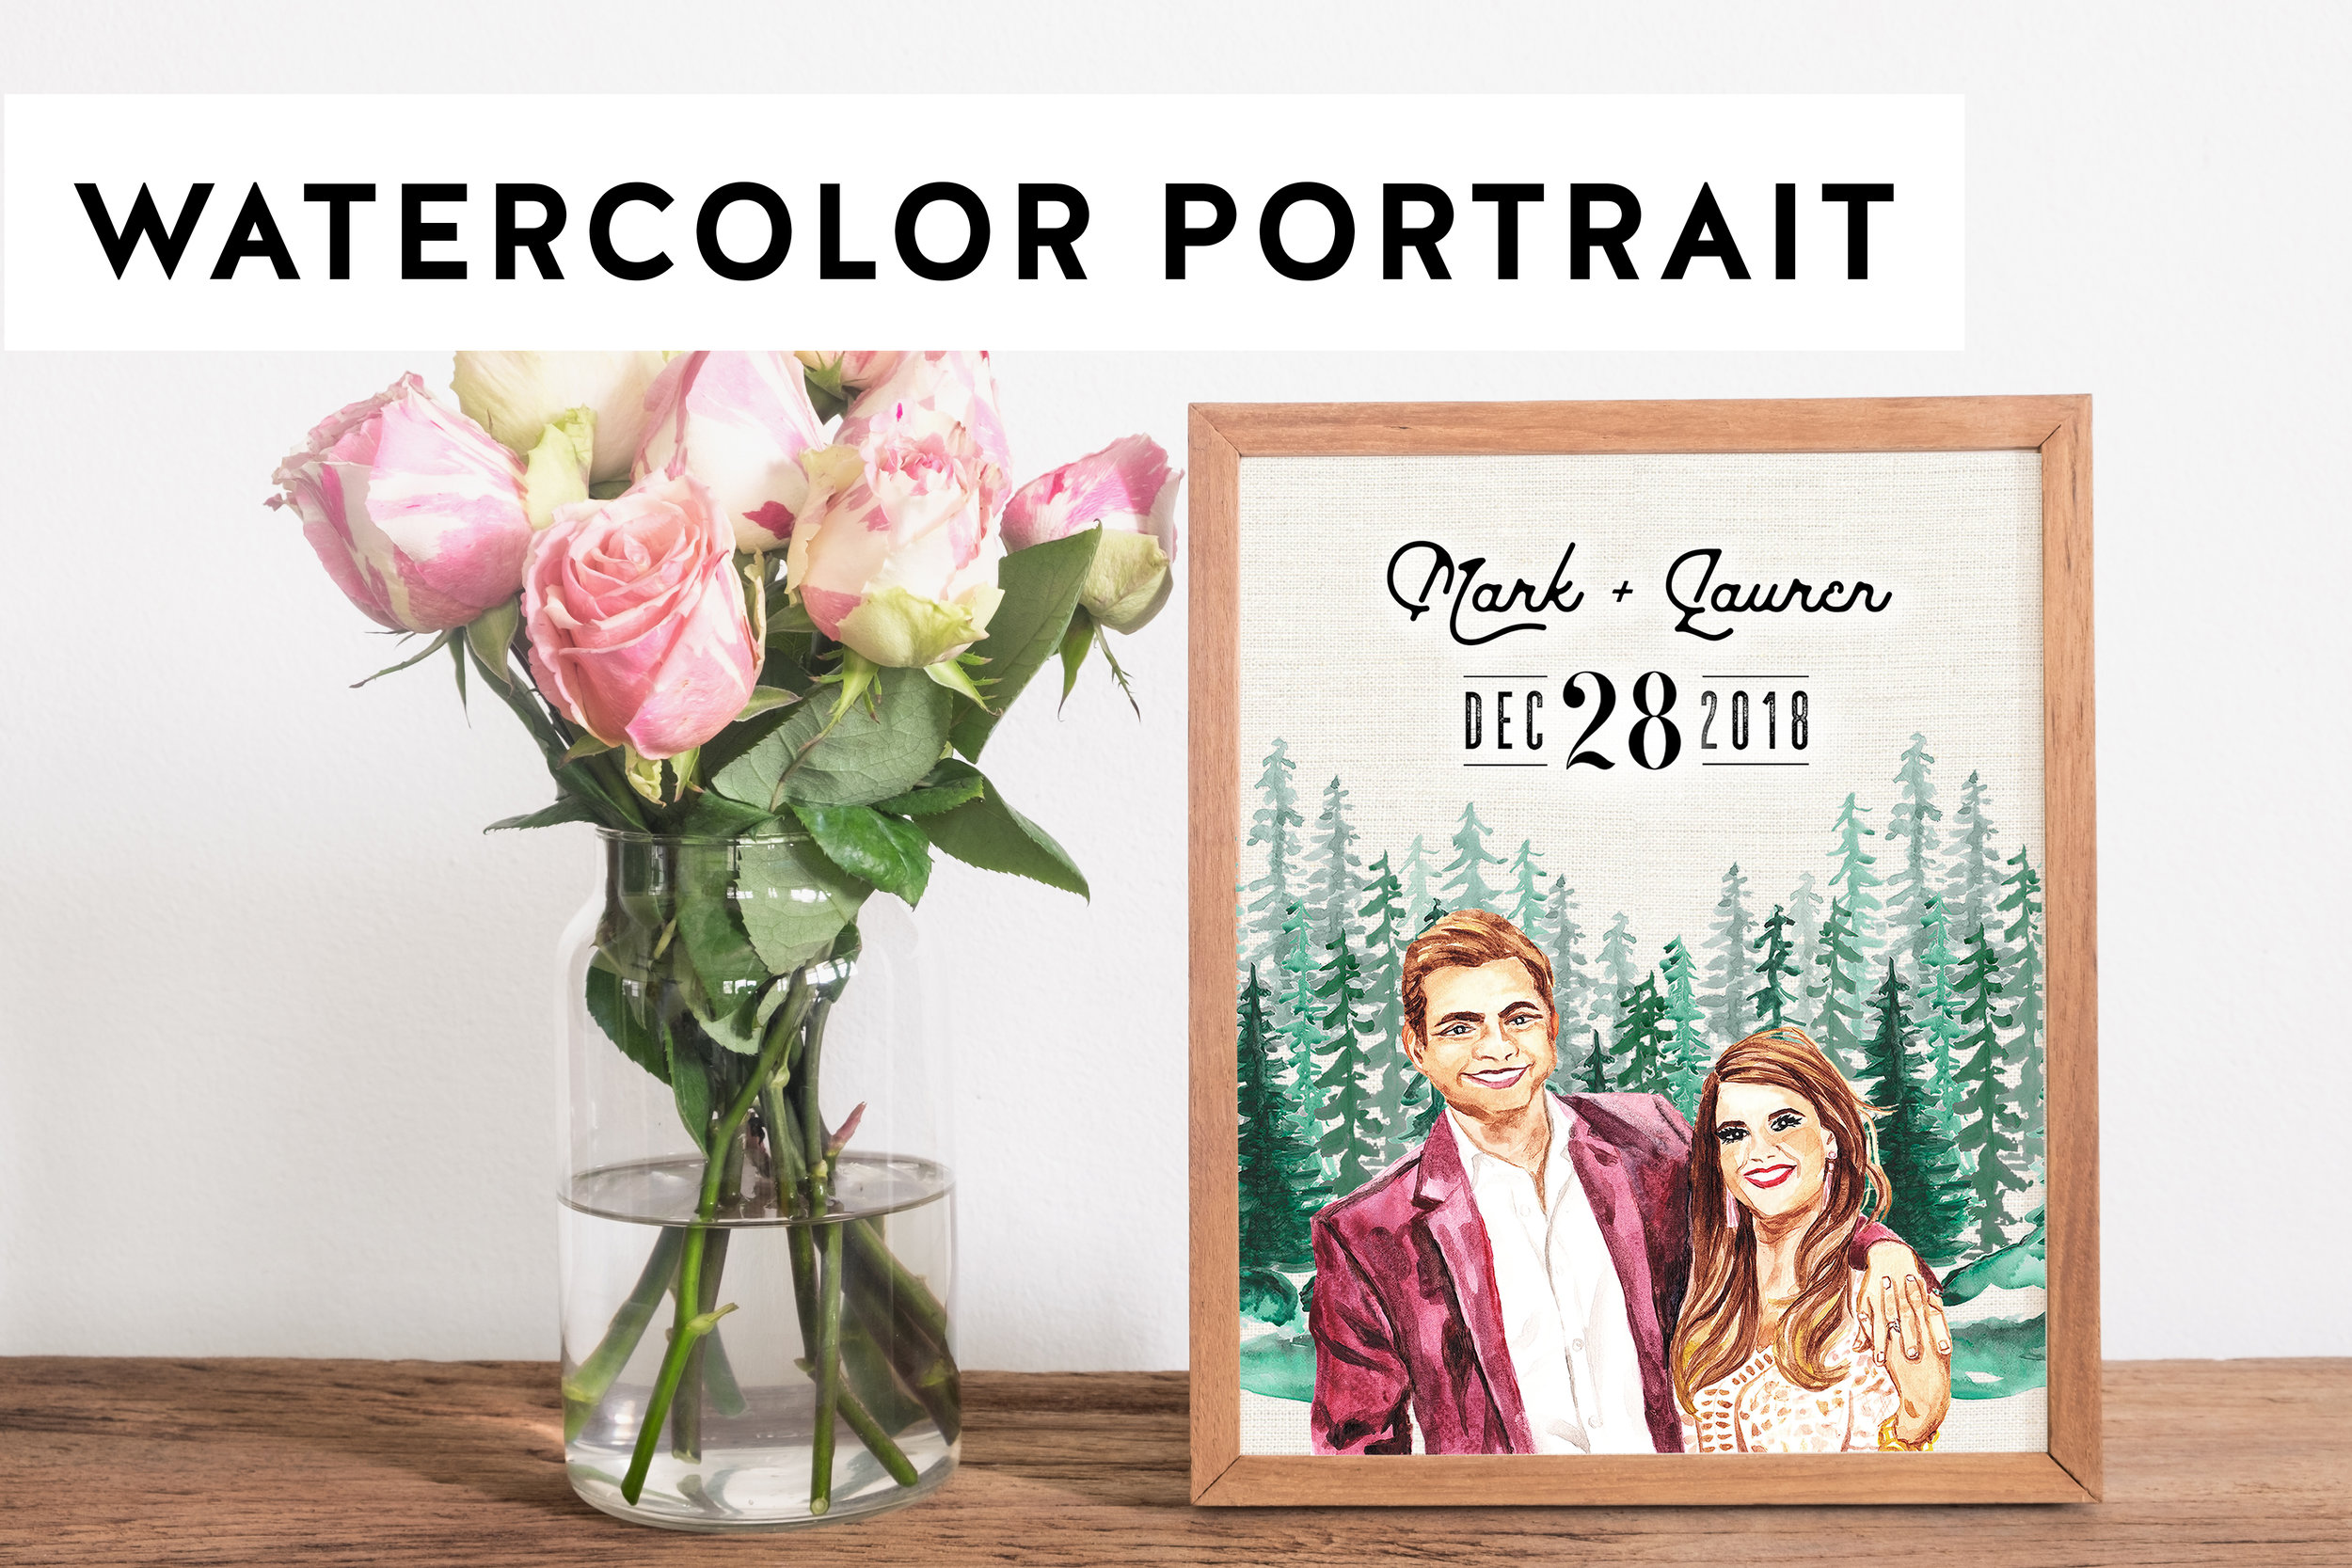 MockUp_Watercolor-Portrait.jpg